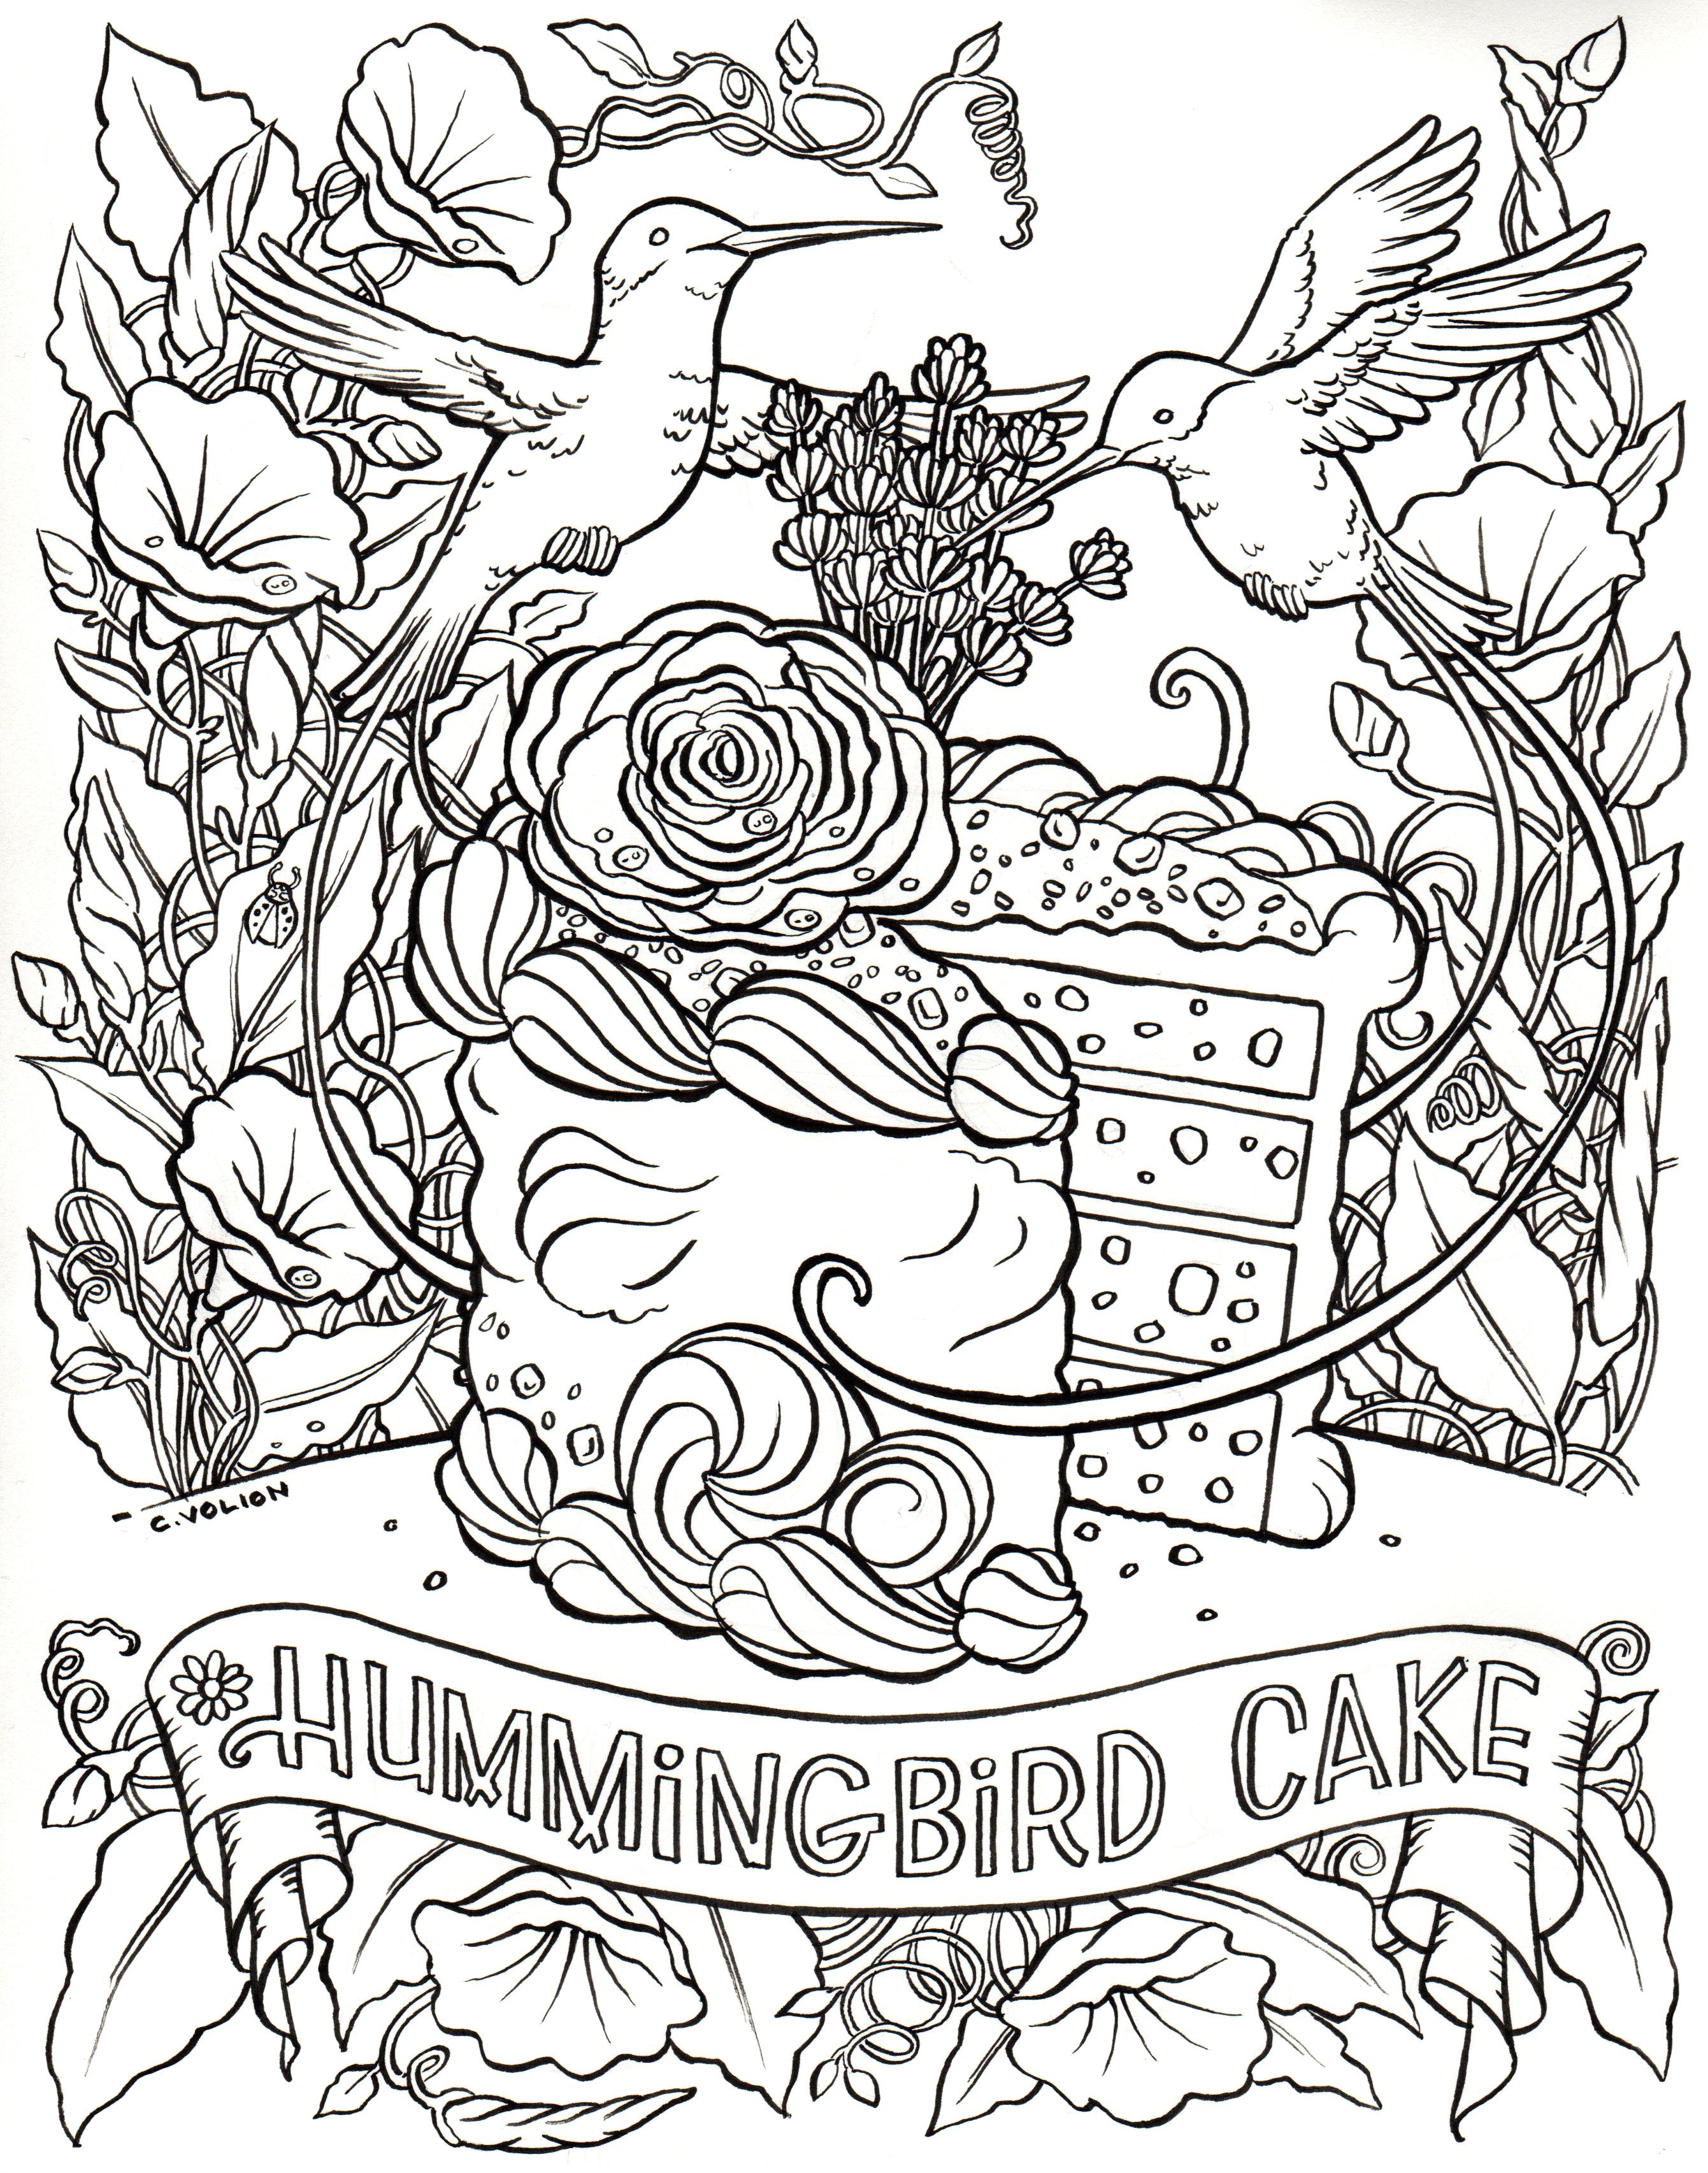 The Fantasy Cake Color and Bake Cookbook - a coloring and baking ...